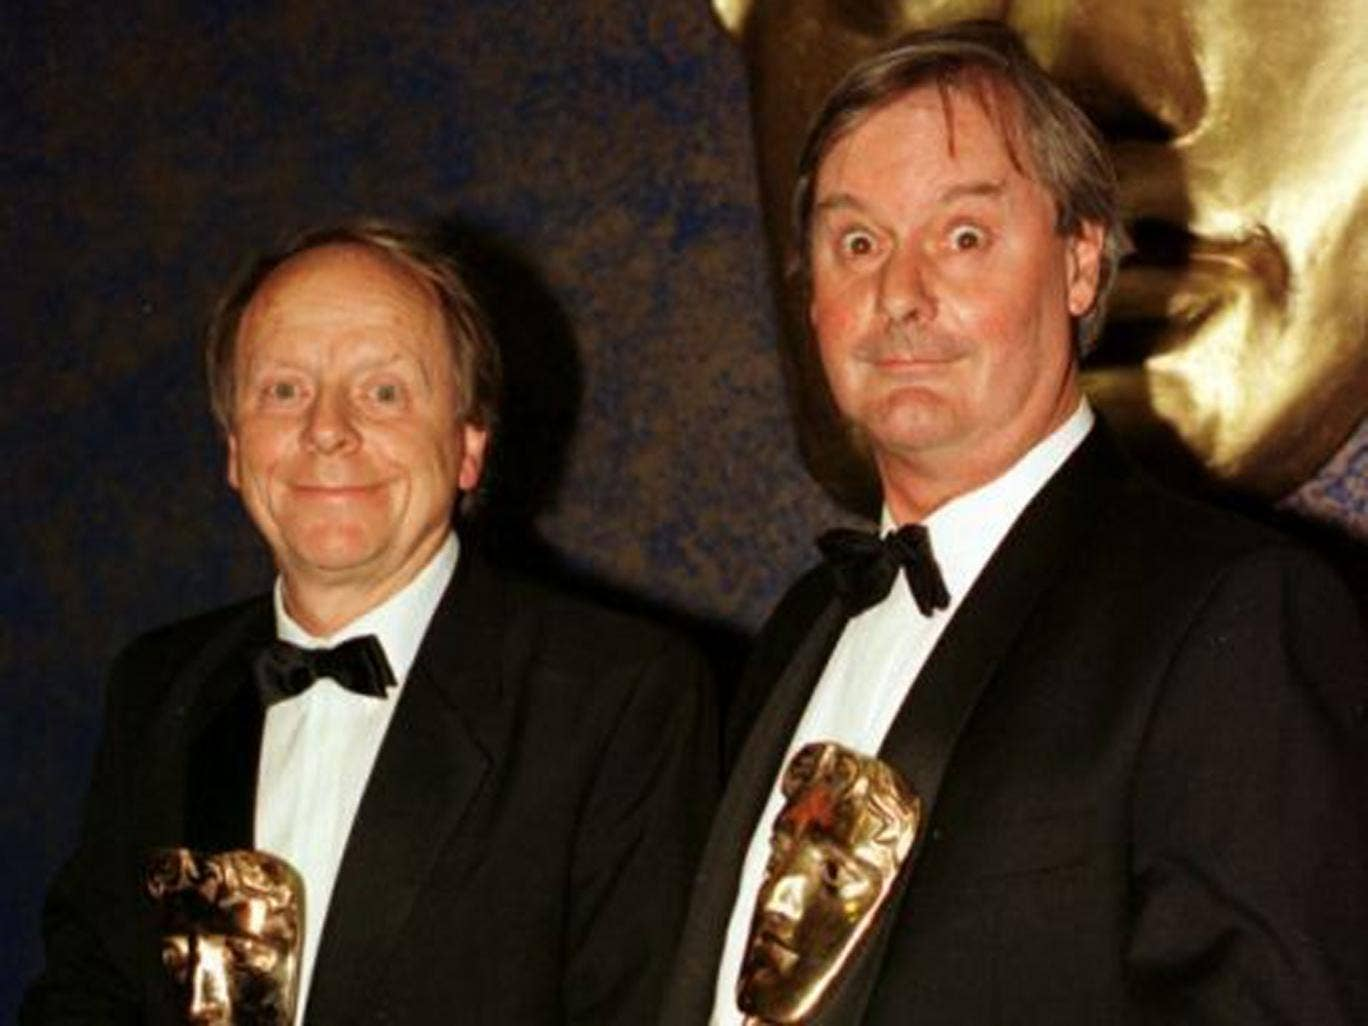 John Fortune (right) with John Bird after they received their 1997 Bafta awards for Best Light Entertainment Performance